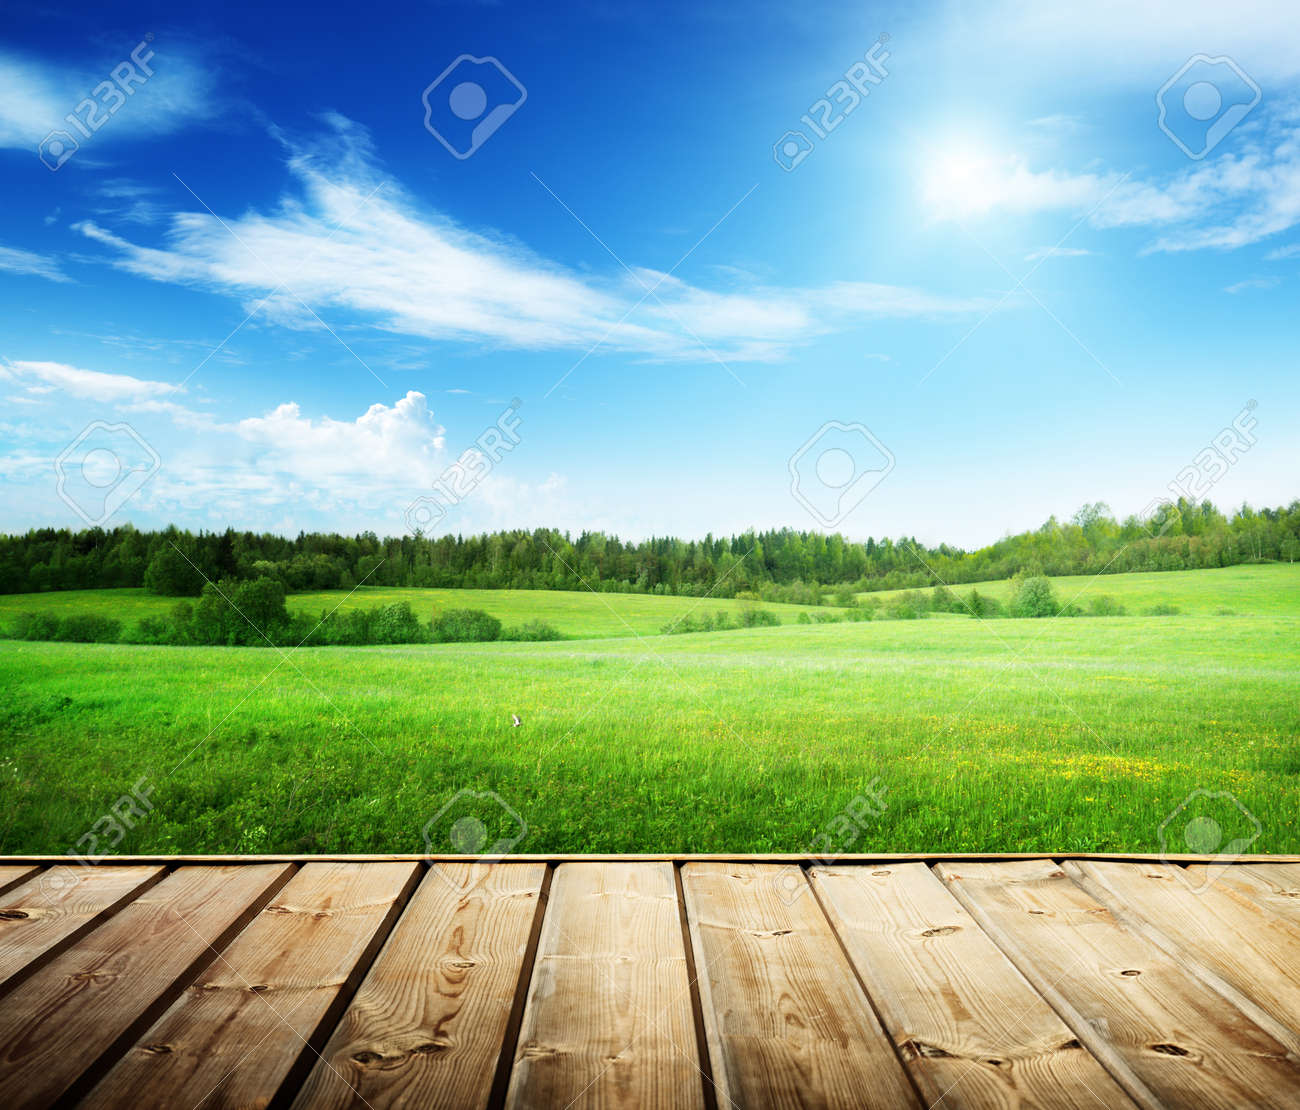 field of grass and perfect sky - 22412970